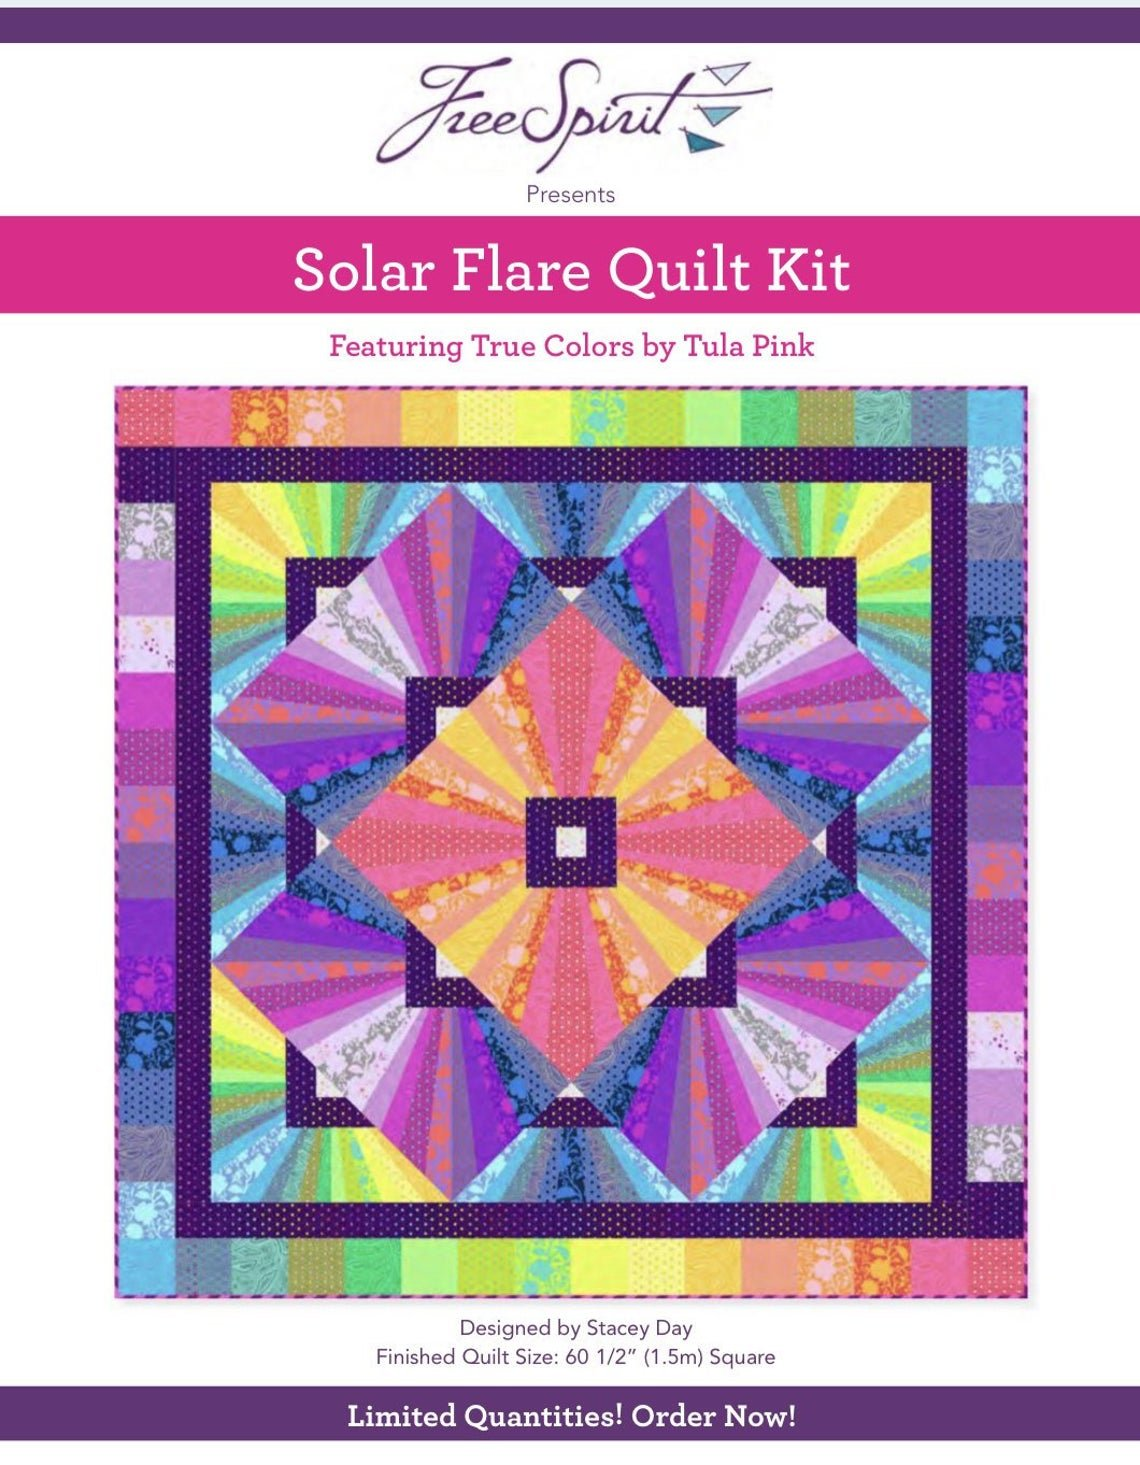 Solar Flare Quilt Kit by Tula Pink featuring True Colors